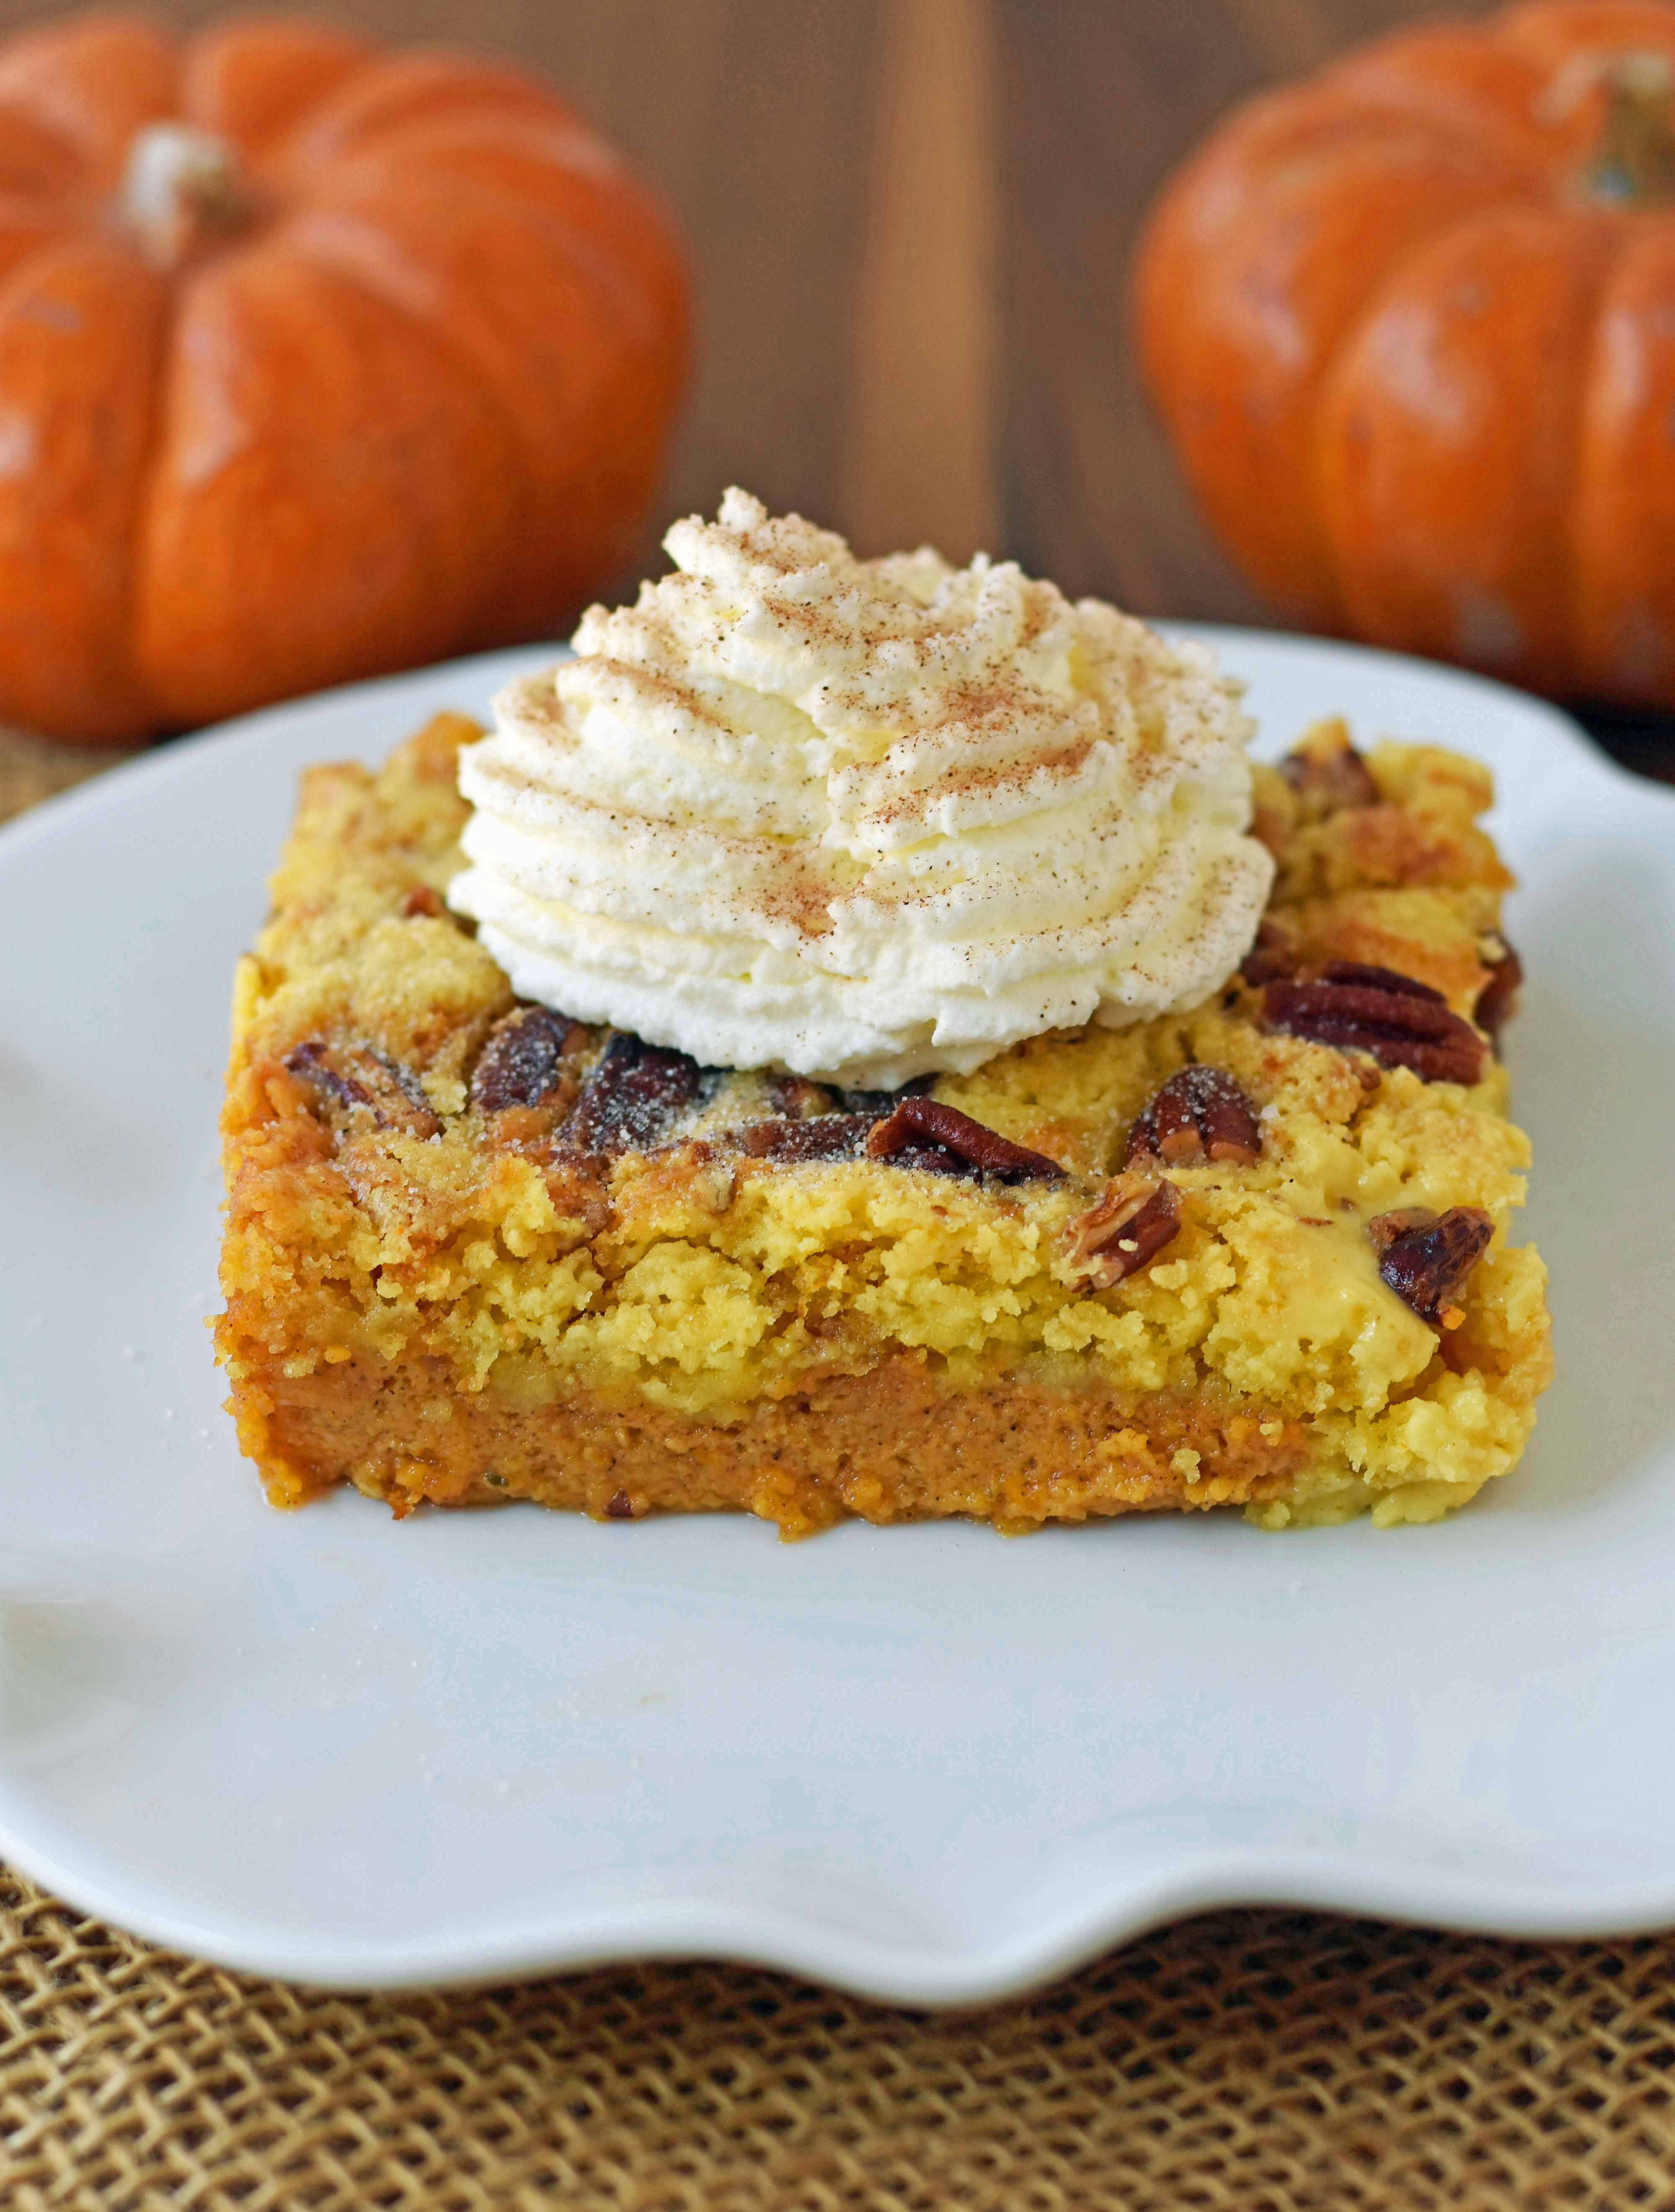 Pumpkin Praline Butter Dump Cake. Pumpkin custard filling baked with a buttery crunchy cake topping. This is the perfect pumpkin Fall dessert. www.modernhoney.com